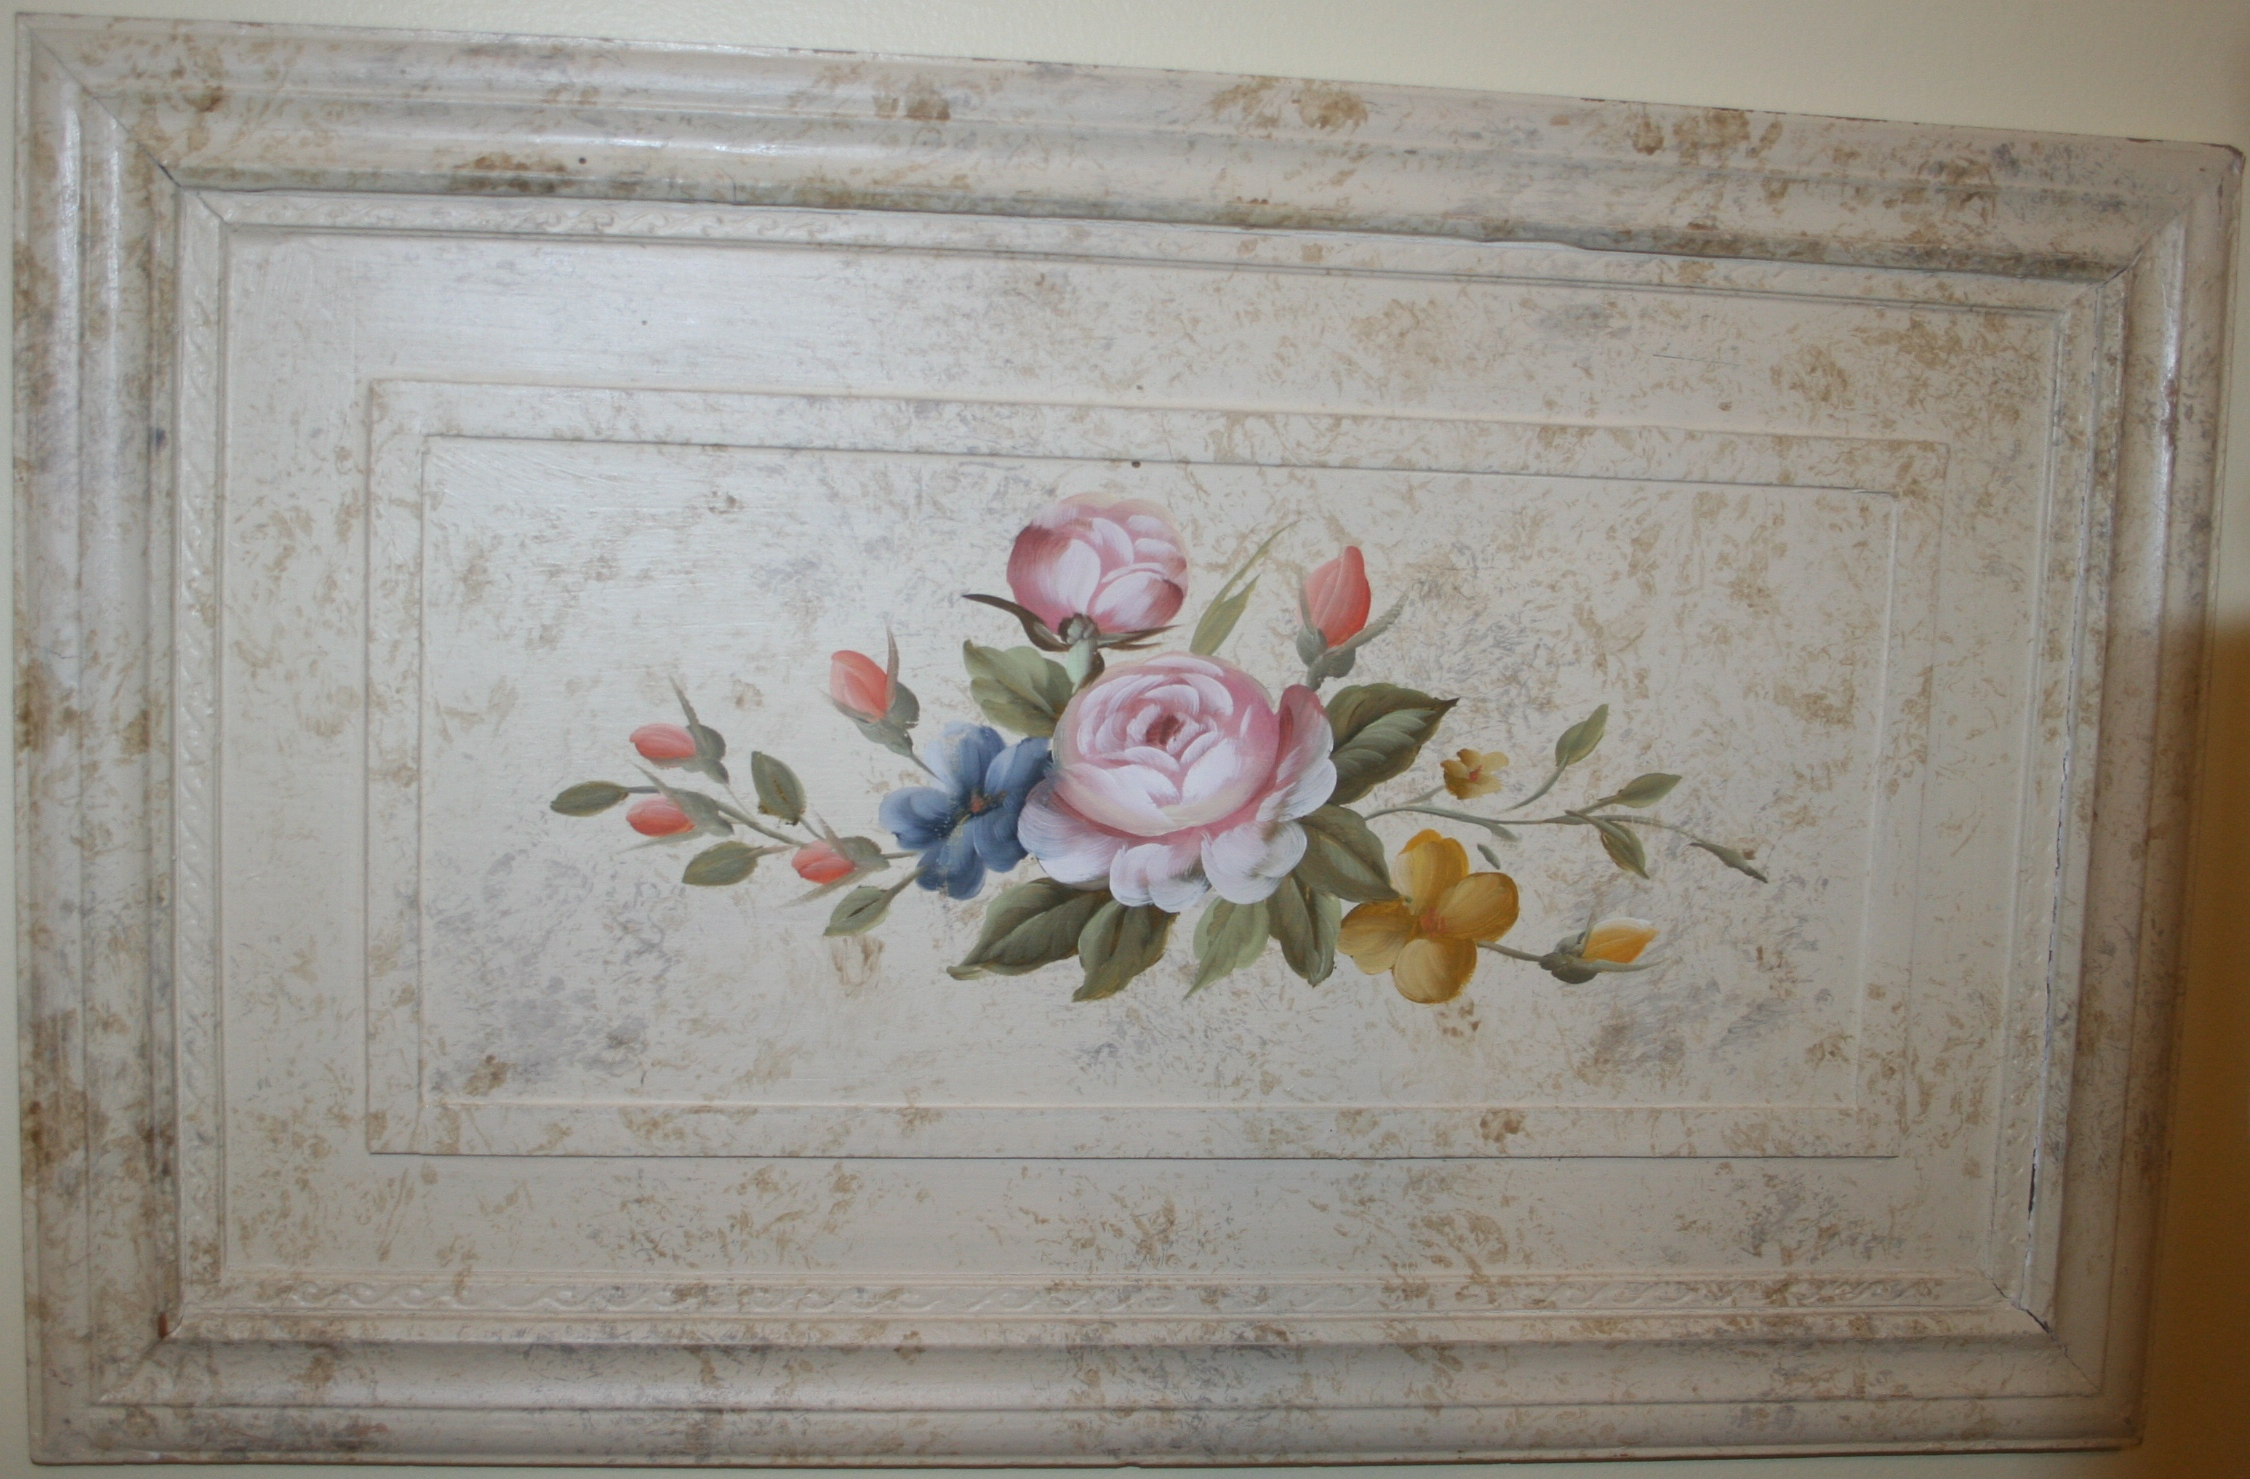 Floral Painting on Wood Image